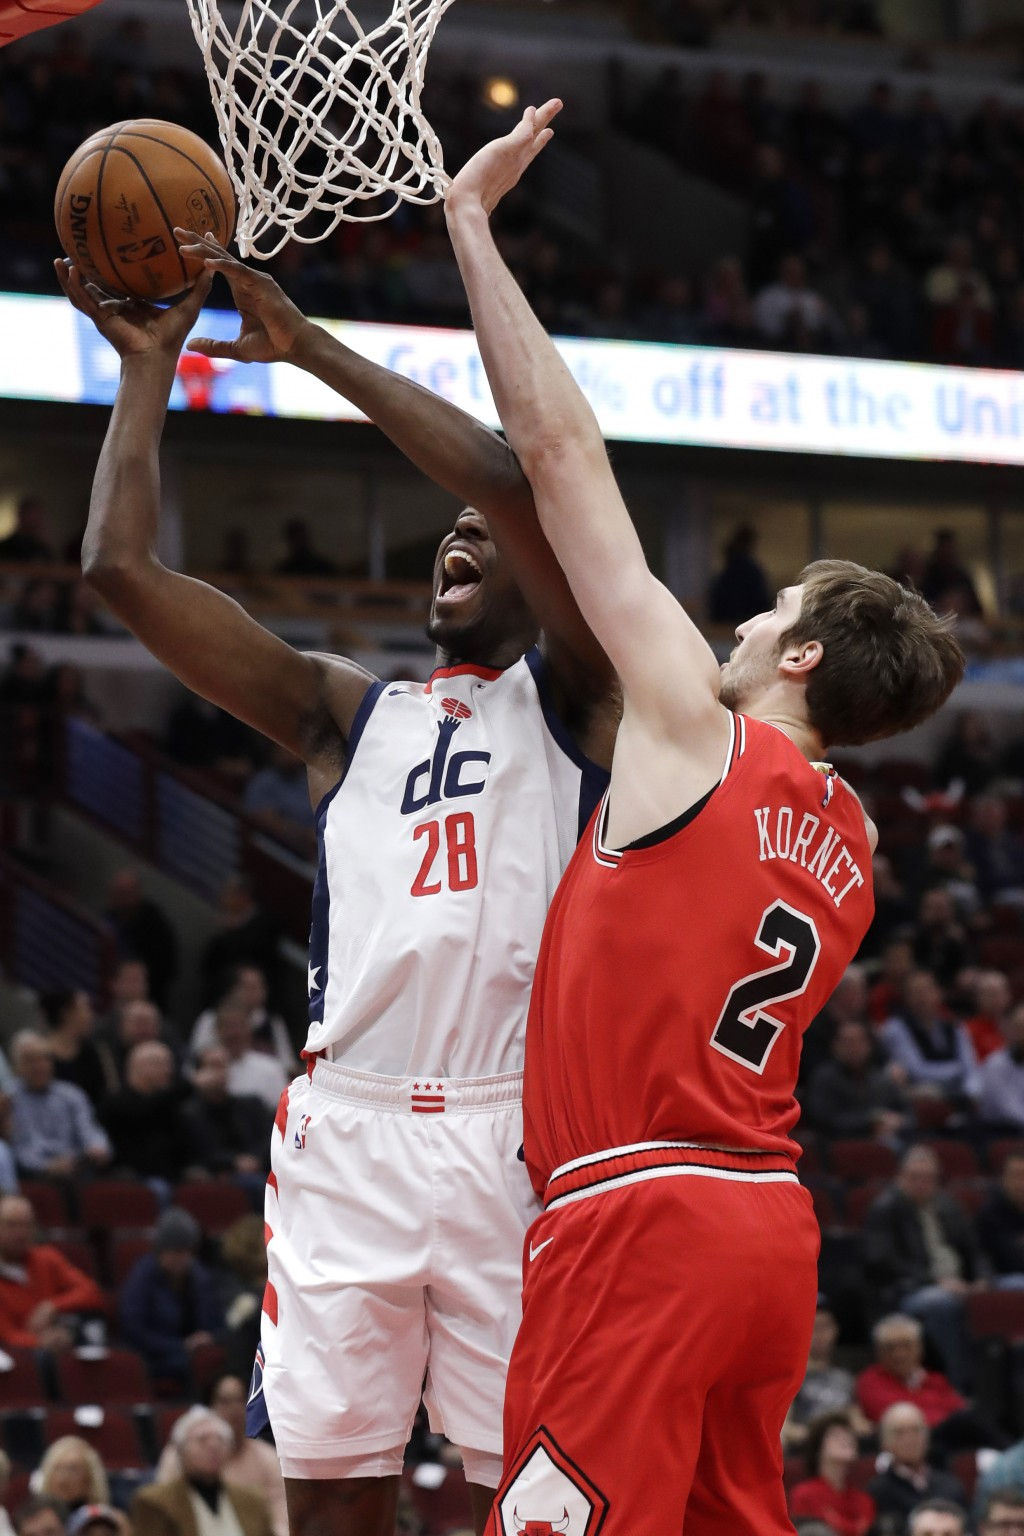 Washington Wizards center Ian Mahinmi, left, shoots next to Chicago Bulls forward Luke Kornet during the first half of an NBA basketball game in Chica...